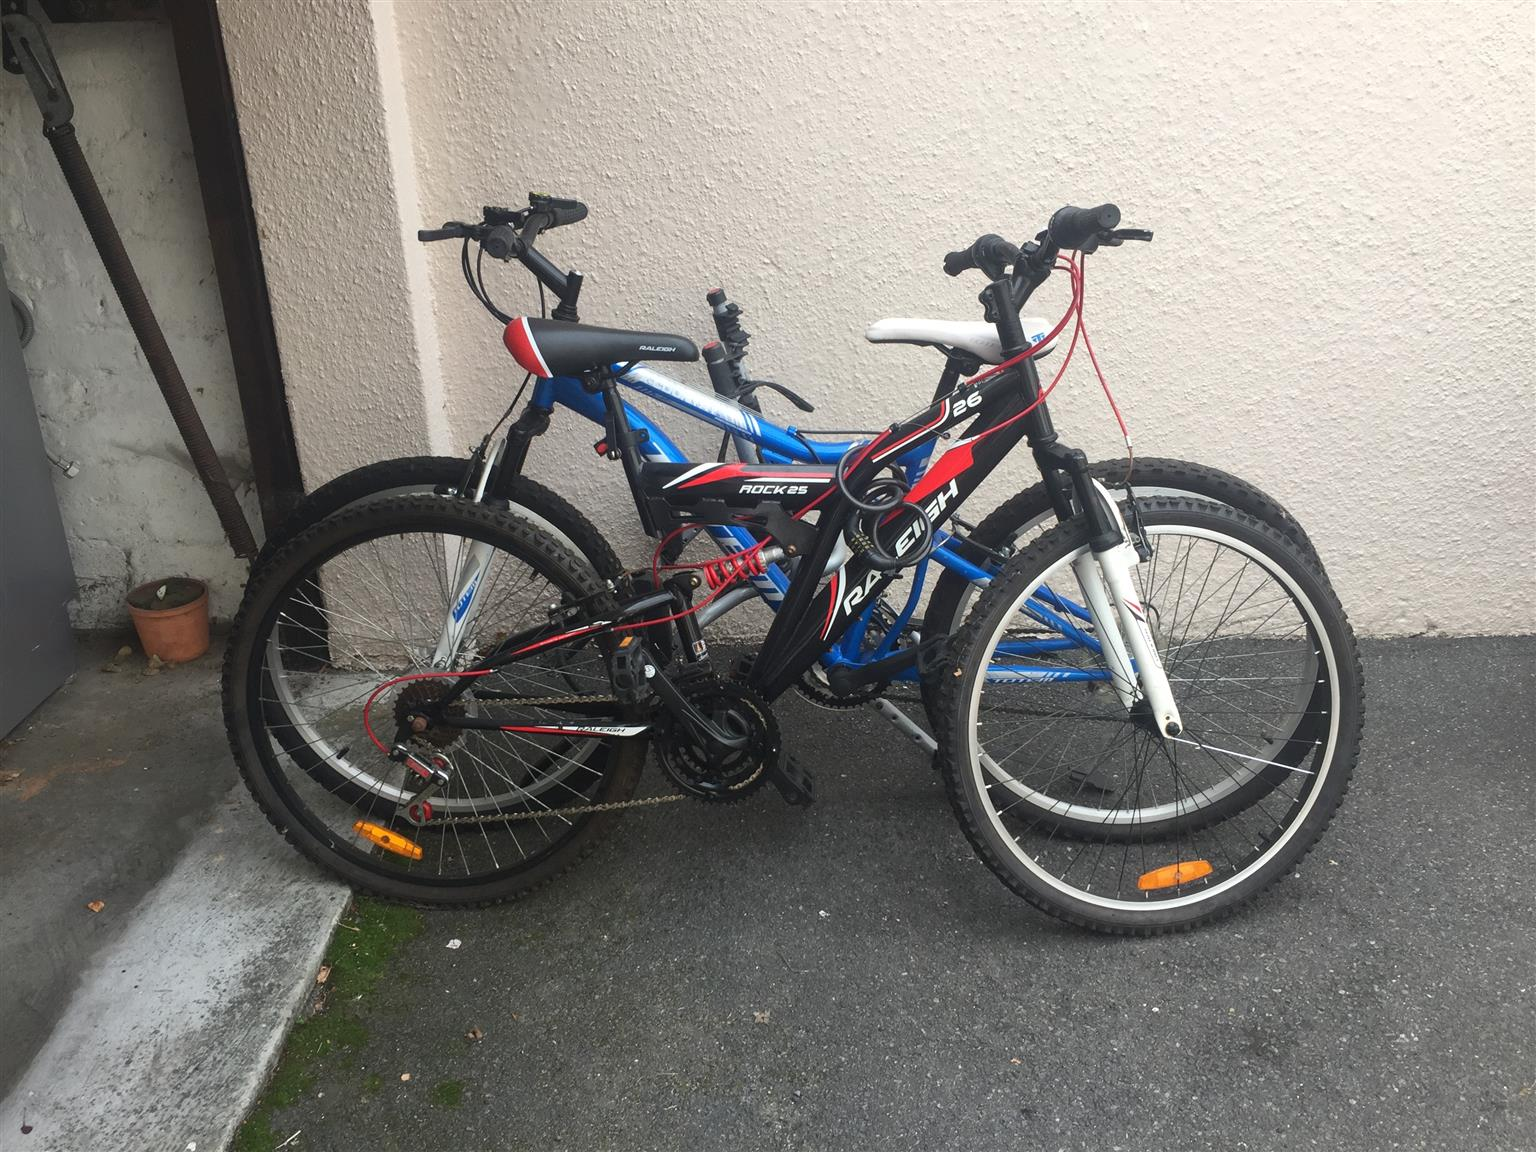 2 x ladies mountain bikes with permatube and bike rack